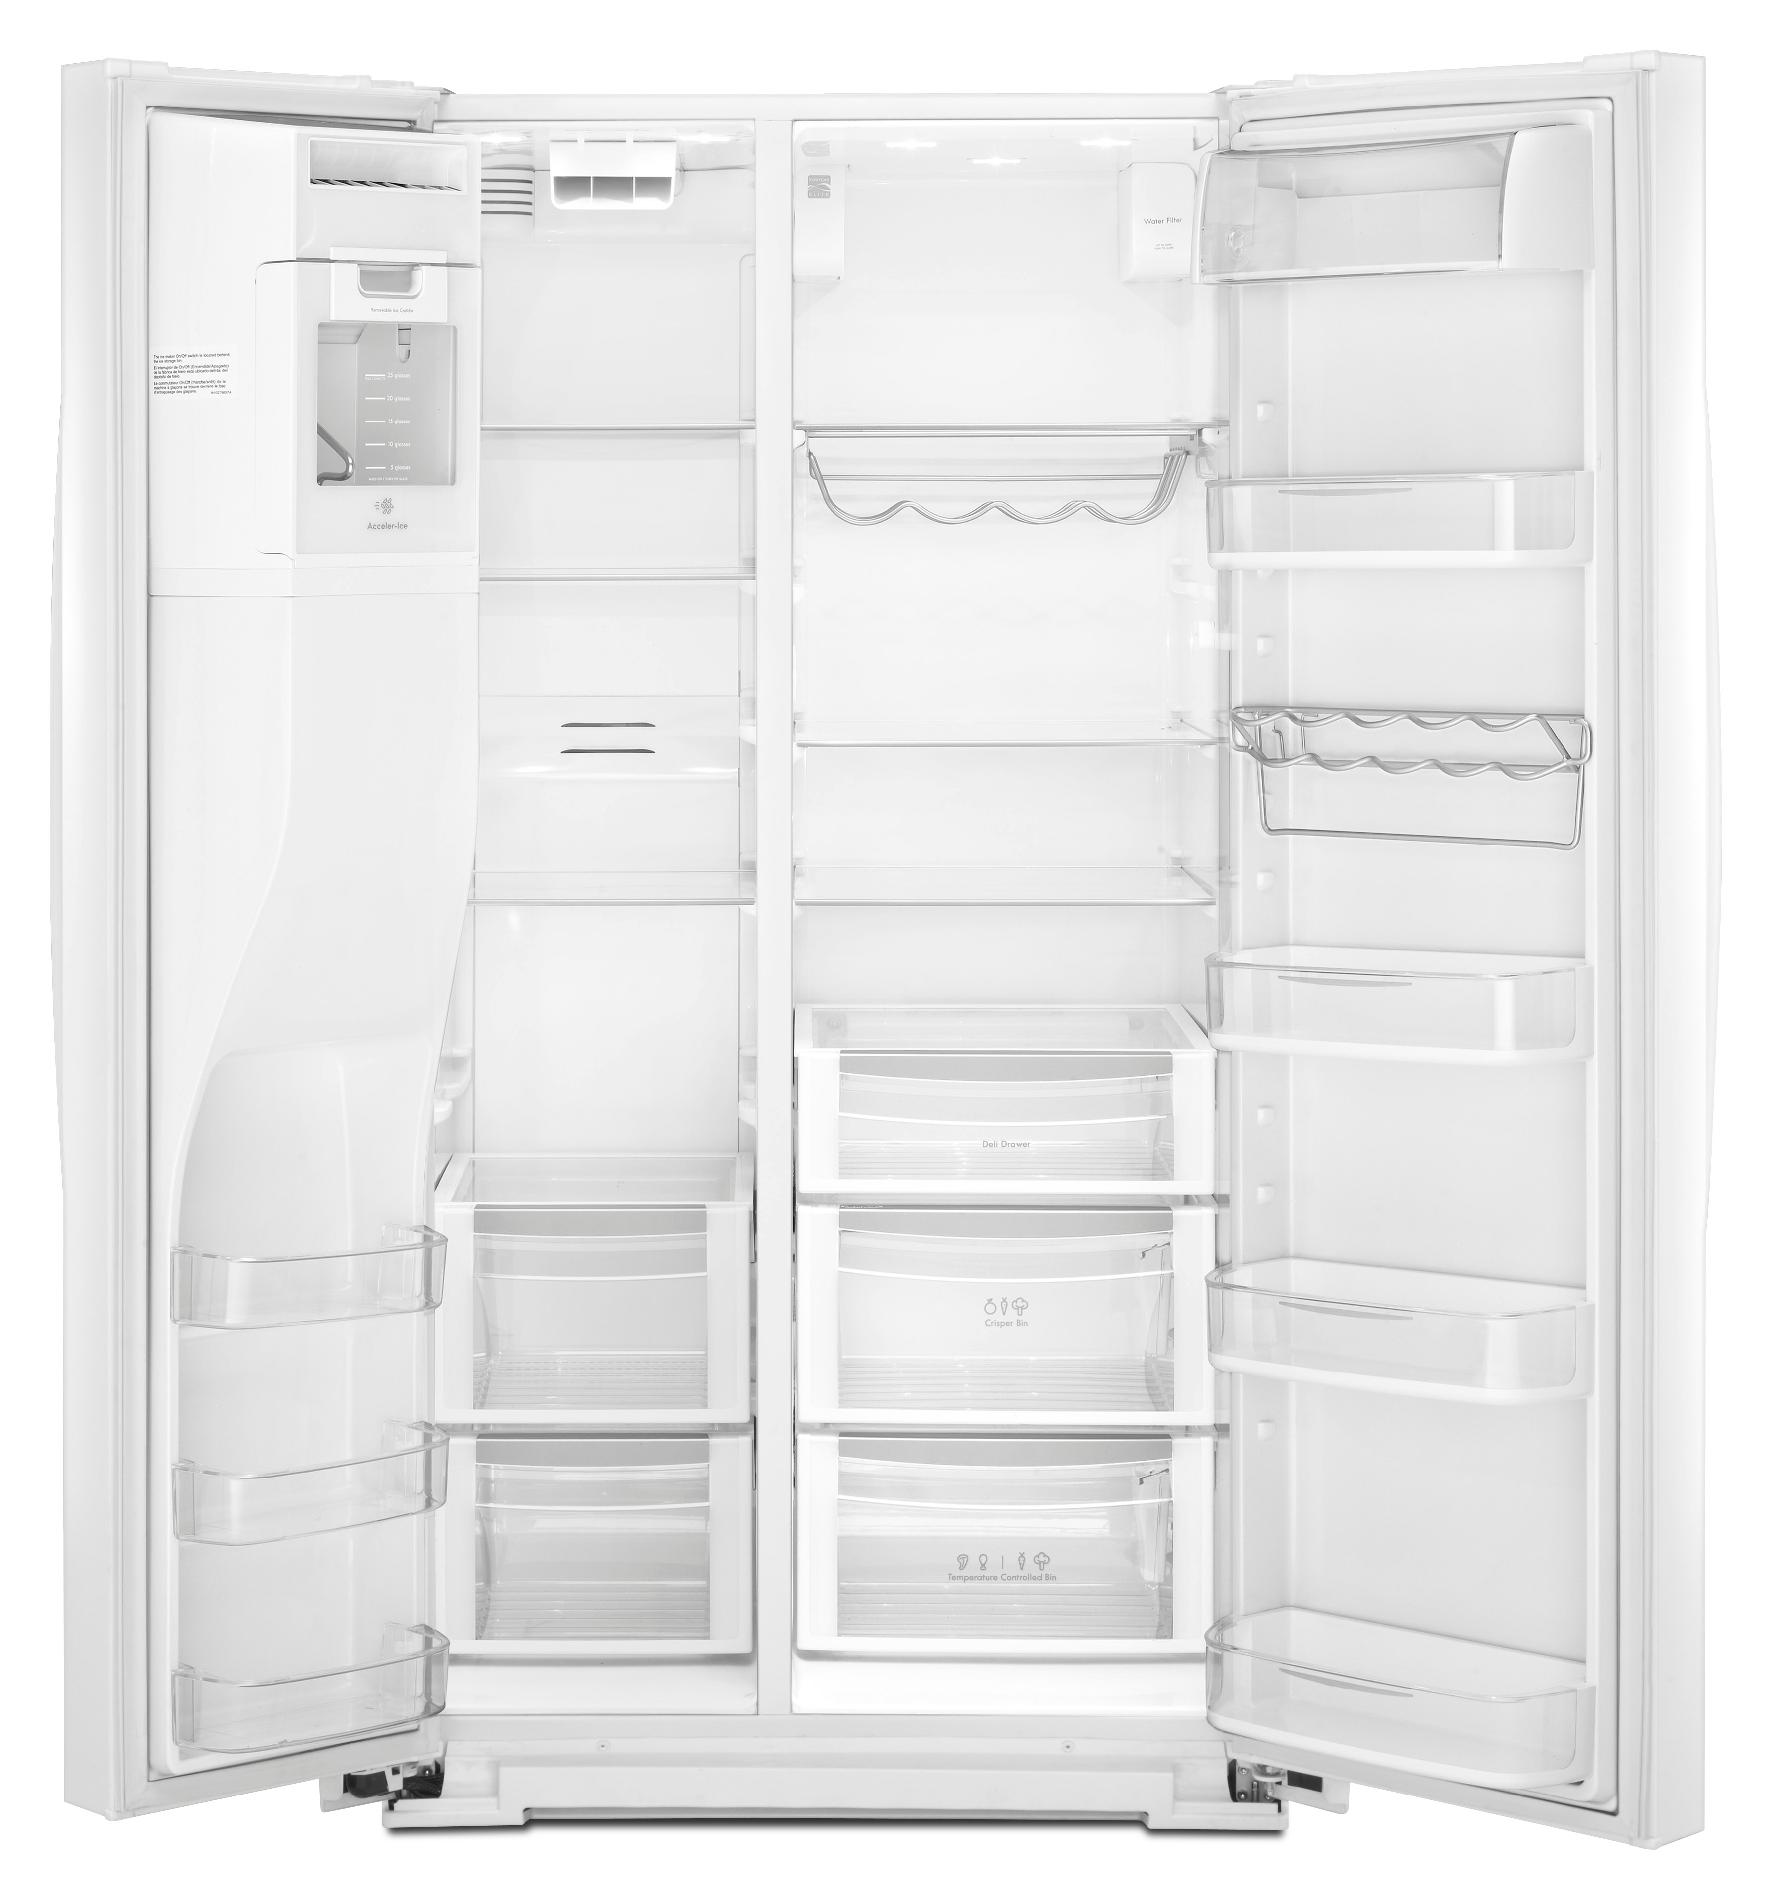 Kenmore Elite 29.8 cu. ft. Side-by-Side Refrigerator - White